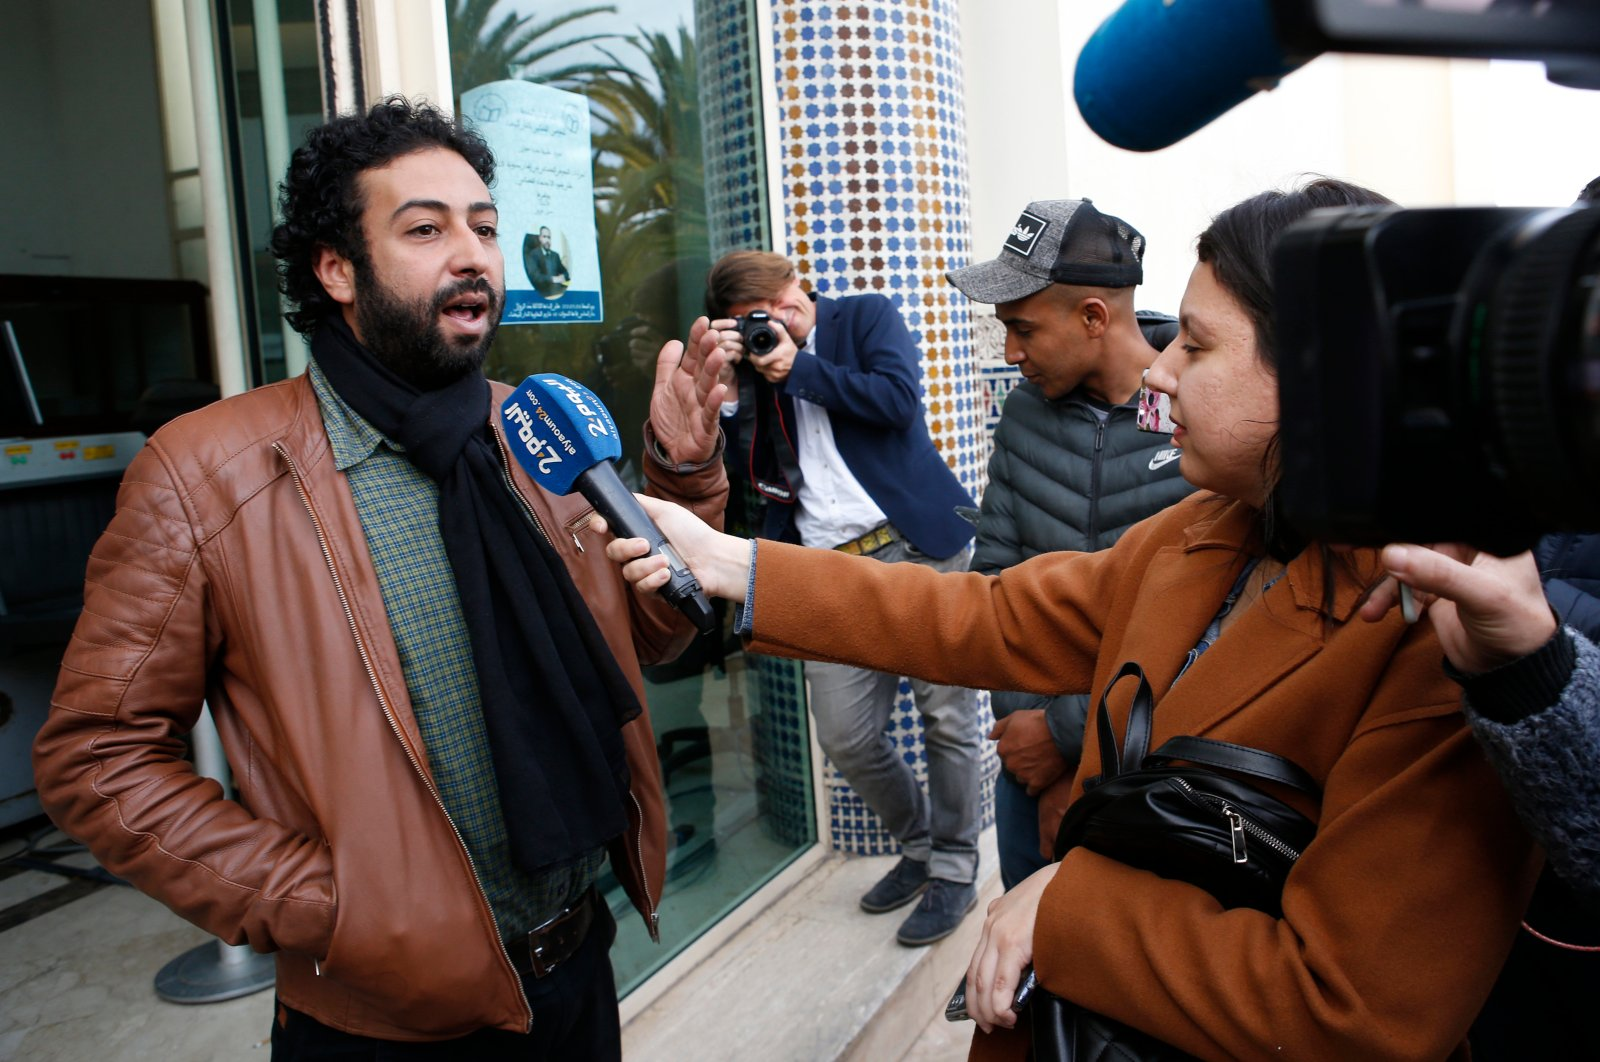 In this March 5, 2020 file photo, journalist and activist Omar Radi speaks after a hearing in Casablanca, Morocco. On Sunday, July 12, 2020, the Tel Aviv District Court rejected a request to strip the controversial Israeli spyware firm NSO Group of its export license over the suspected use of the company's technology in targeting journalists, including Radi, and dissidents worldwide. (AP Photo)